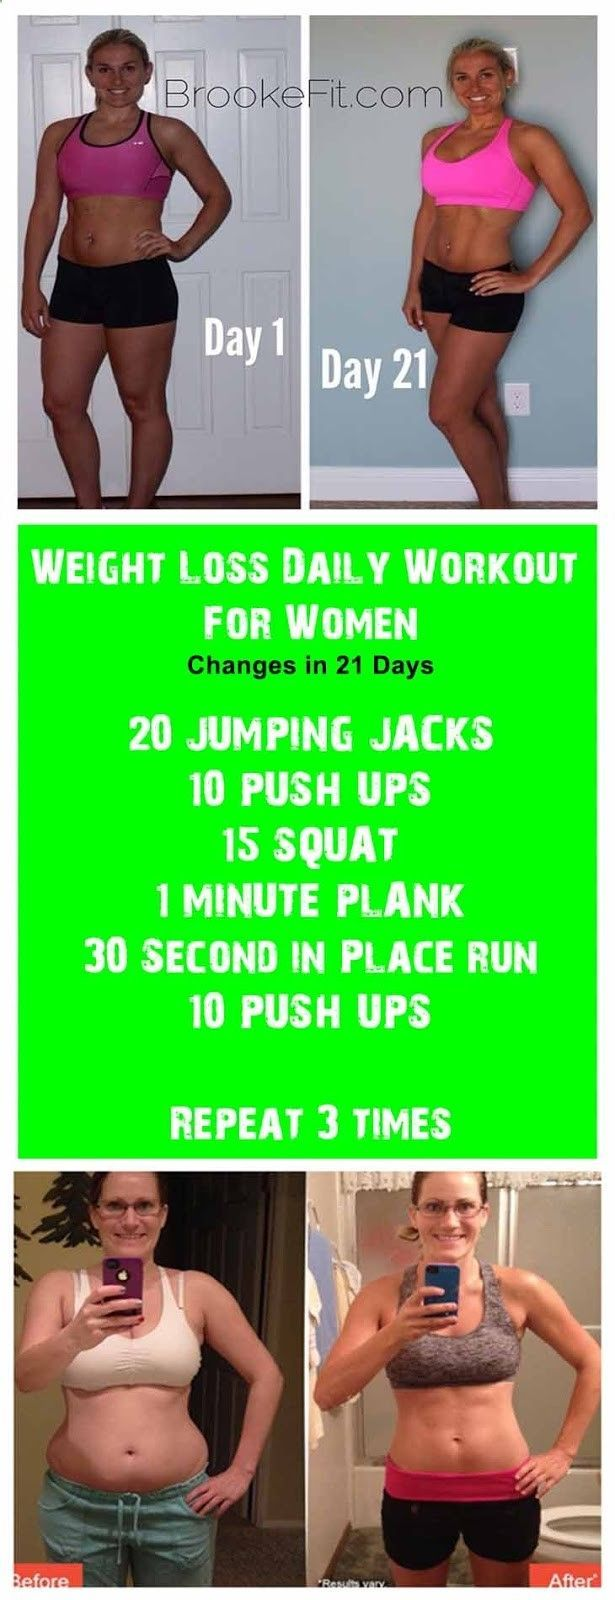 Weight loss action steps photo 4